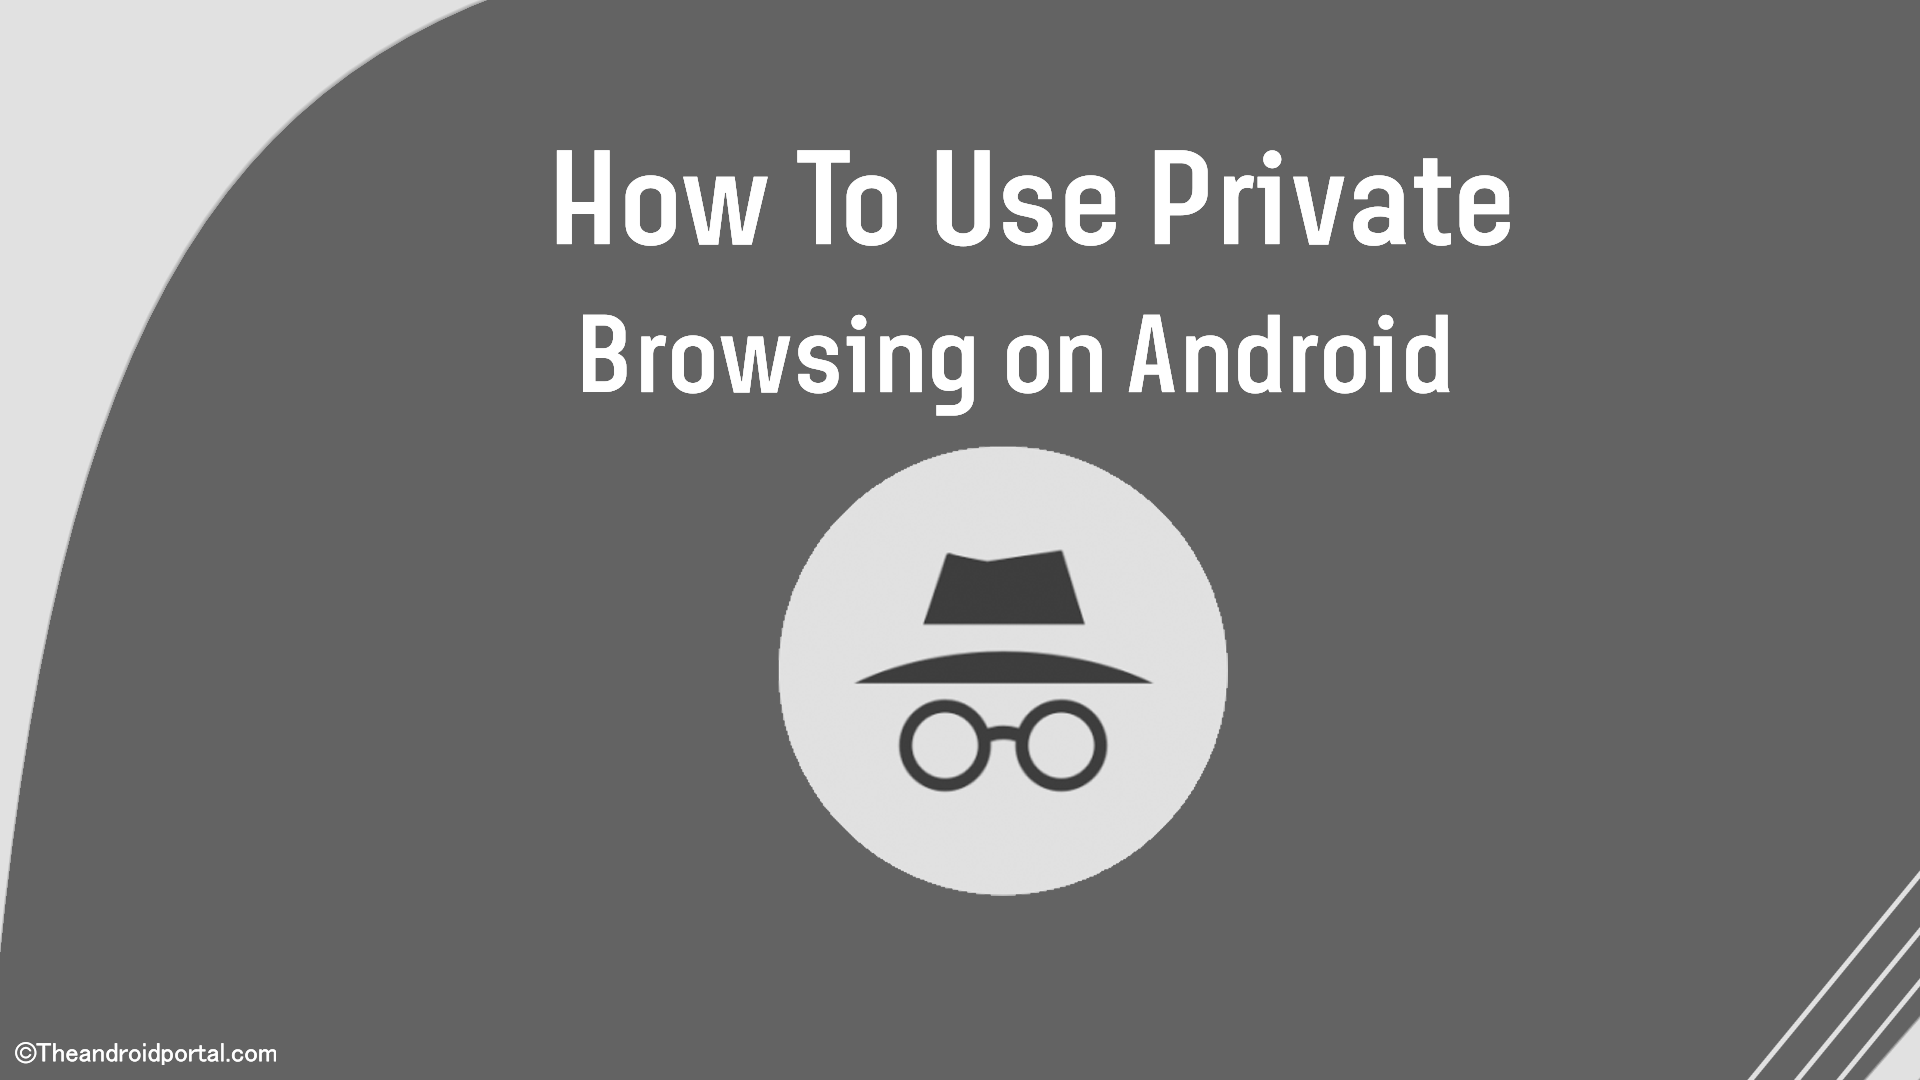 How To Use Private Browsing on Android - theandroidportal.com